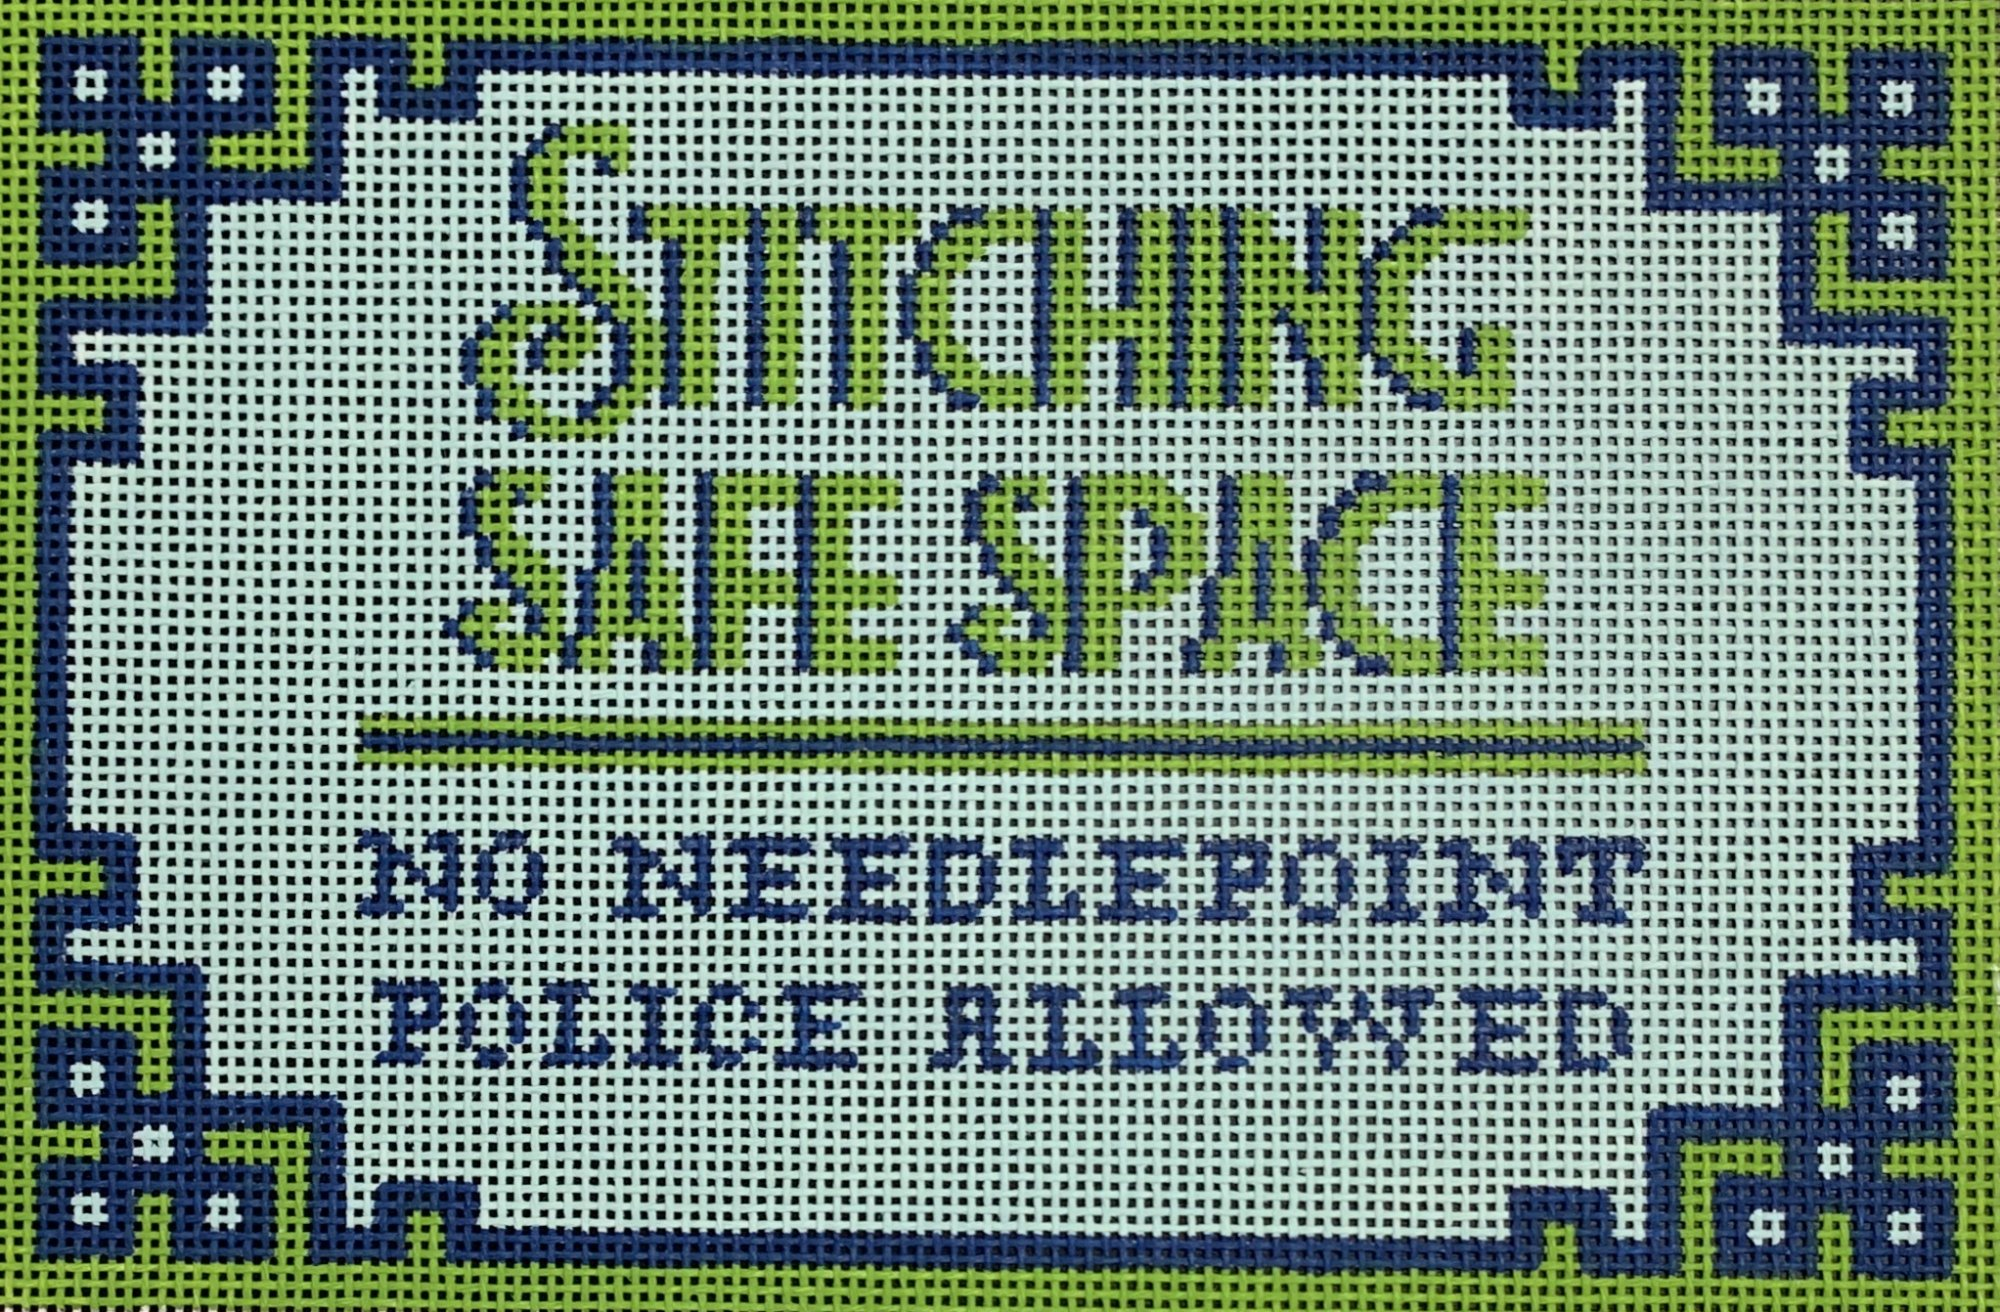 Stitching Safe Space Blue/Green